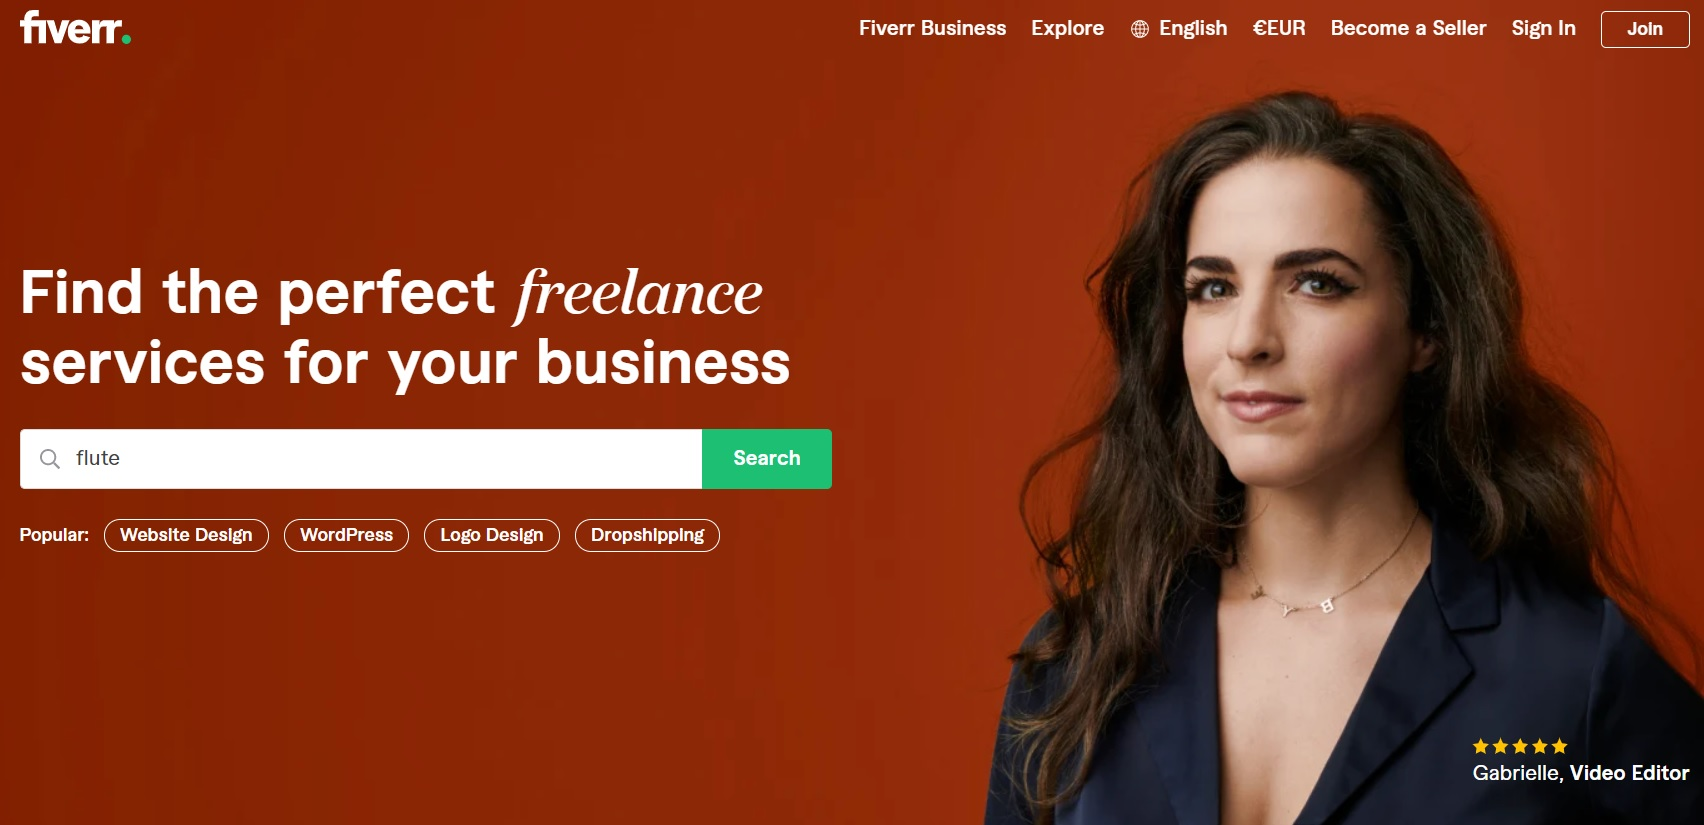 Fiverr freelancing website with online flute classes